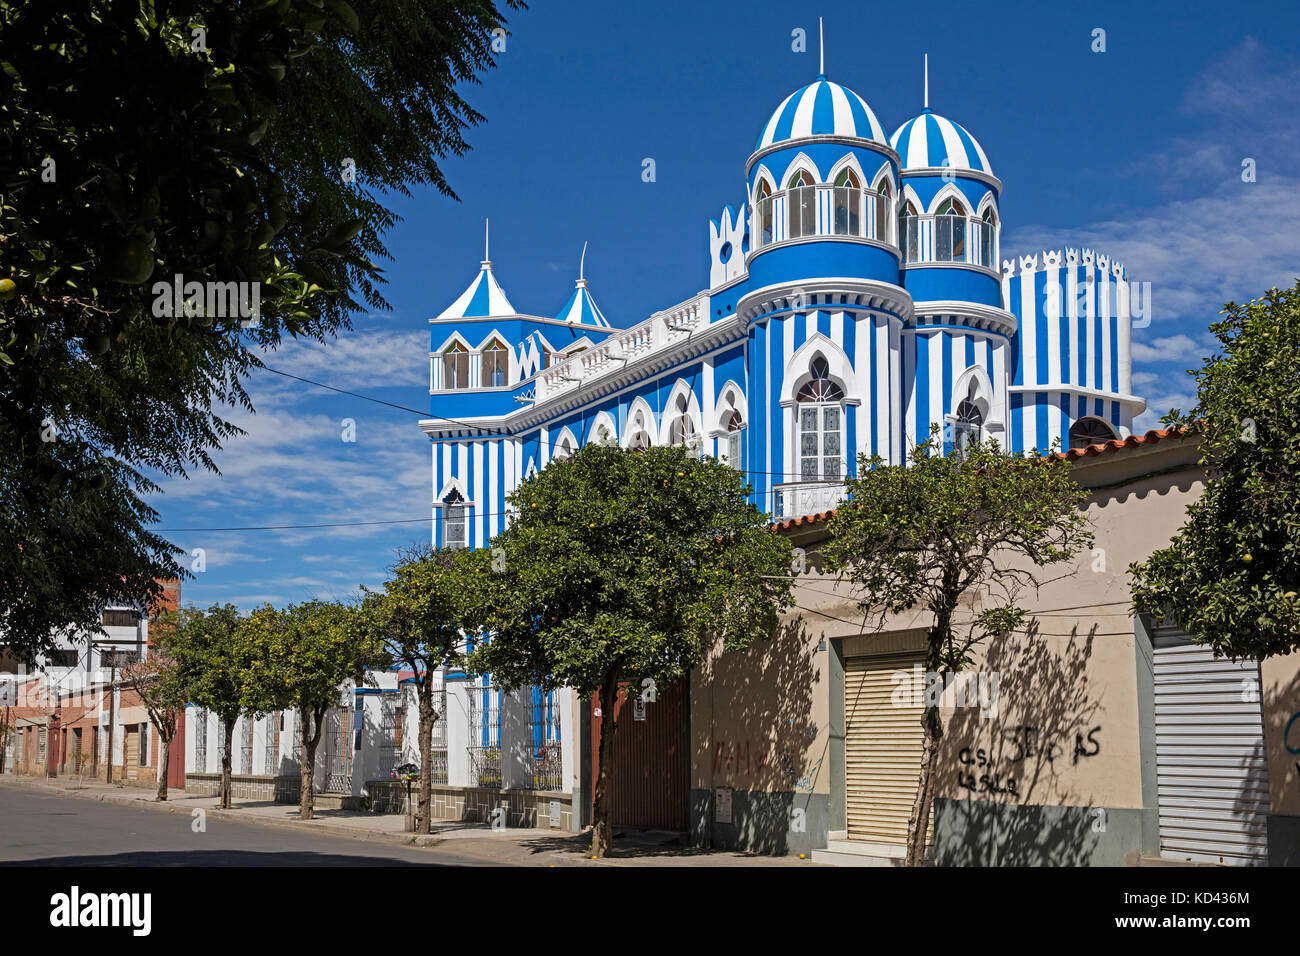 Castillo Azul Moisés Navajas, the old governor's house in the city Tarija, Cercado, southern Bolivia - Stock Image